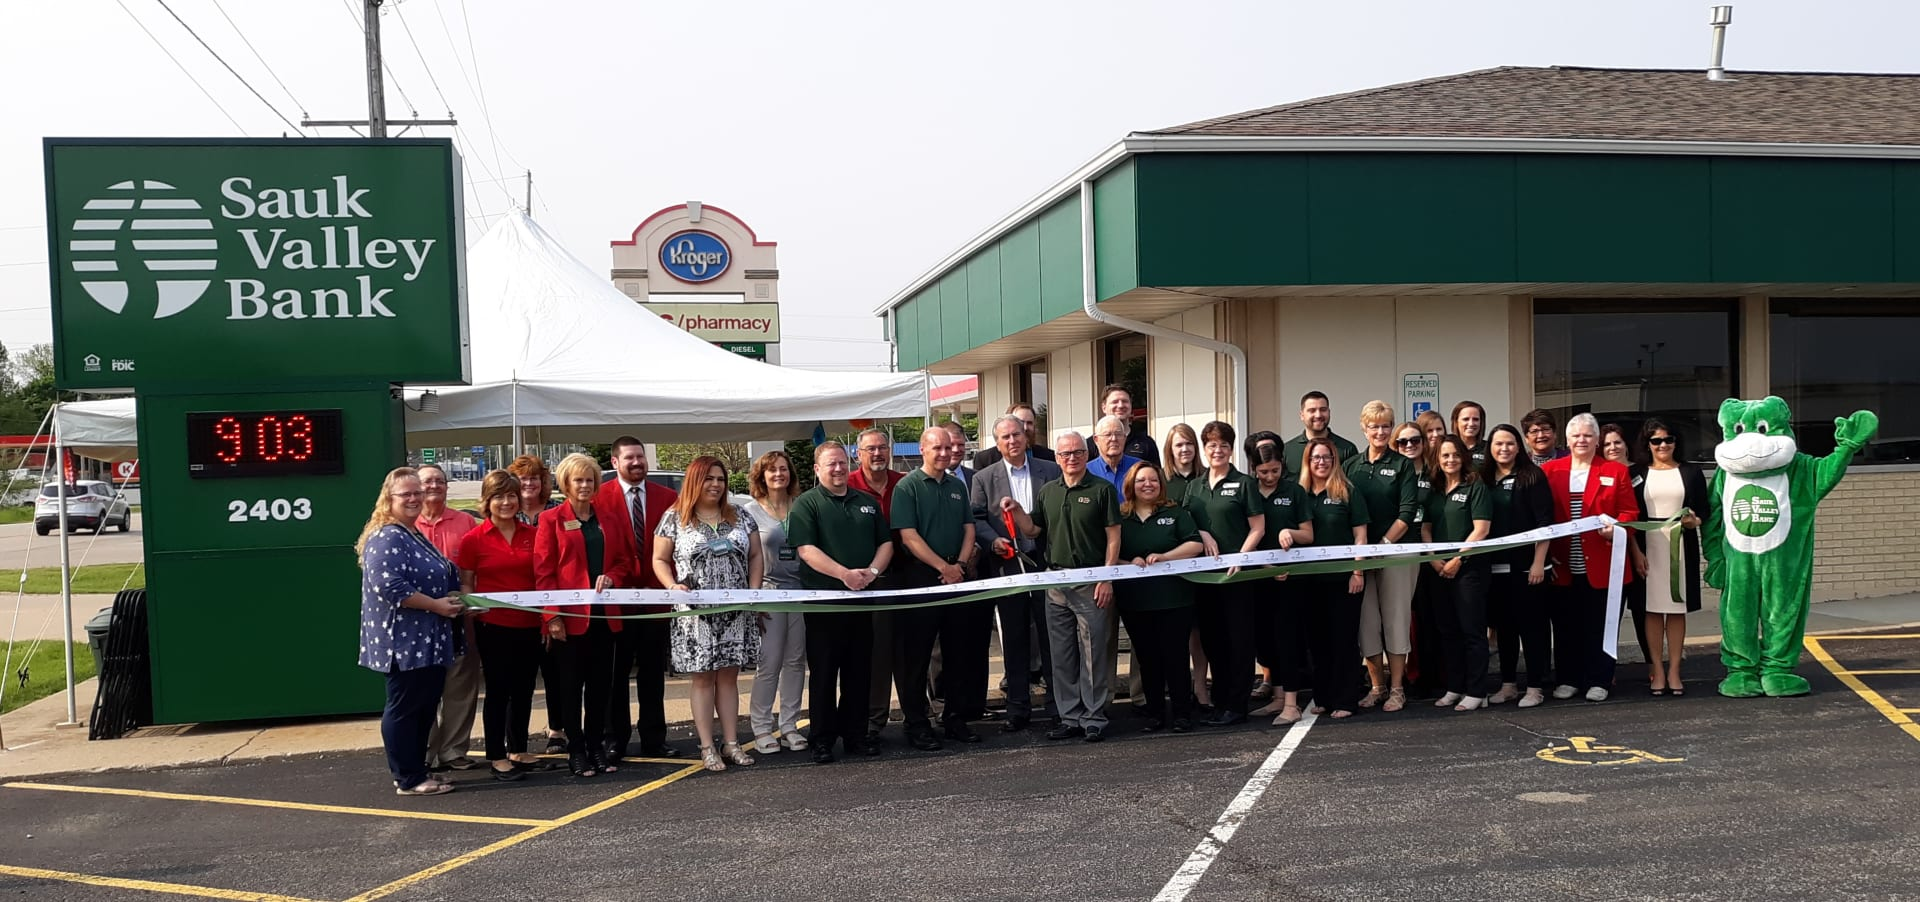 Sauk-Valley-Bank-Ribbon-Cutting-w1920.jpg